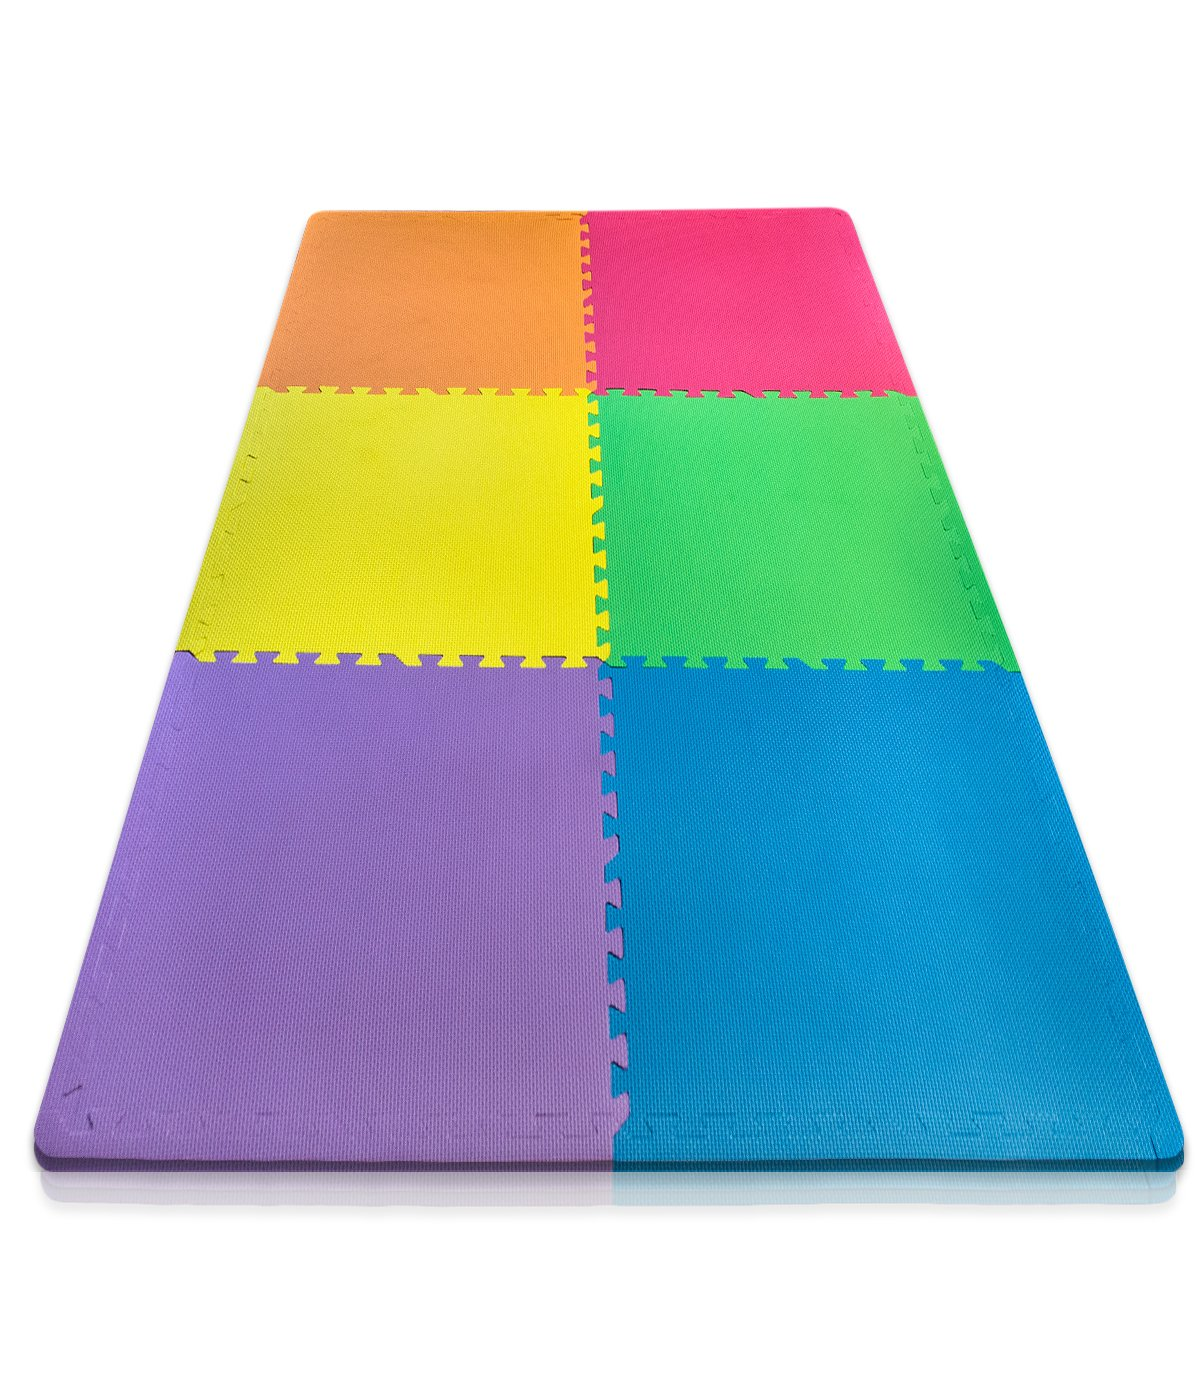 """Sivan Health and Fitness Puzzle Exercise Mat Colorful 6 EVA Foam Interlocking Tiles Each Tile Measures 24""""x24"""" Total of 24sq ft"""